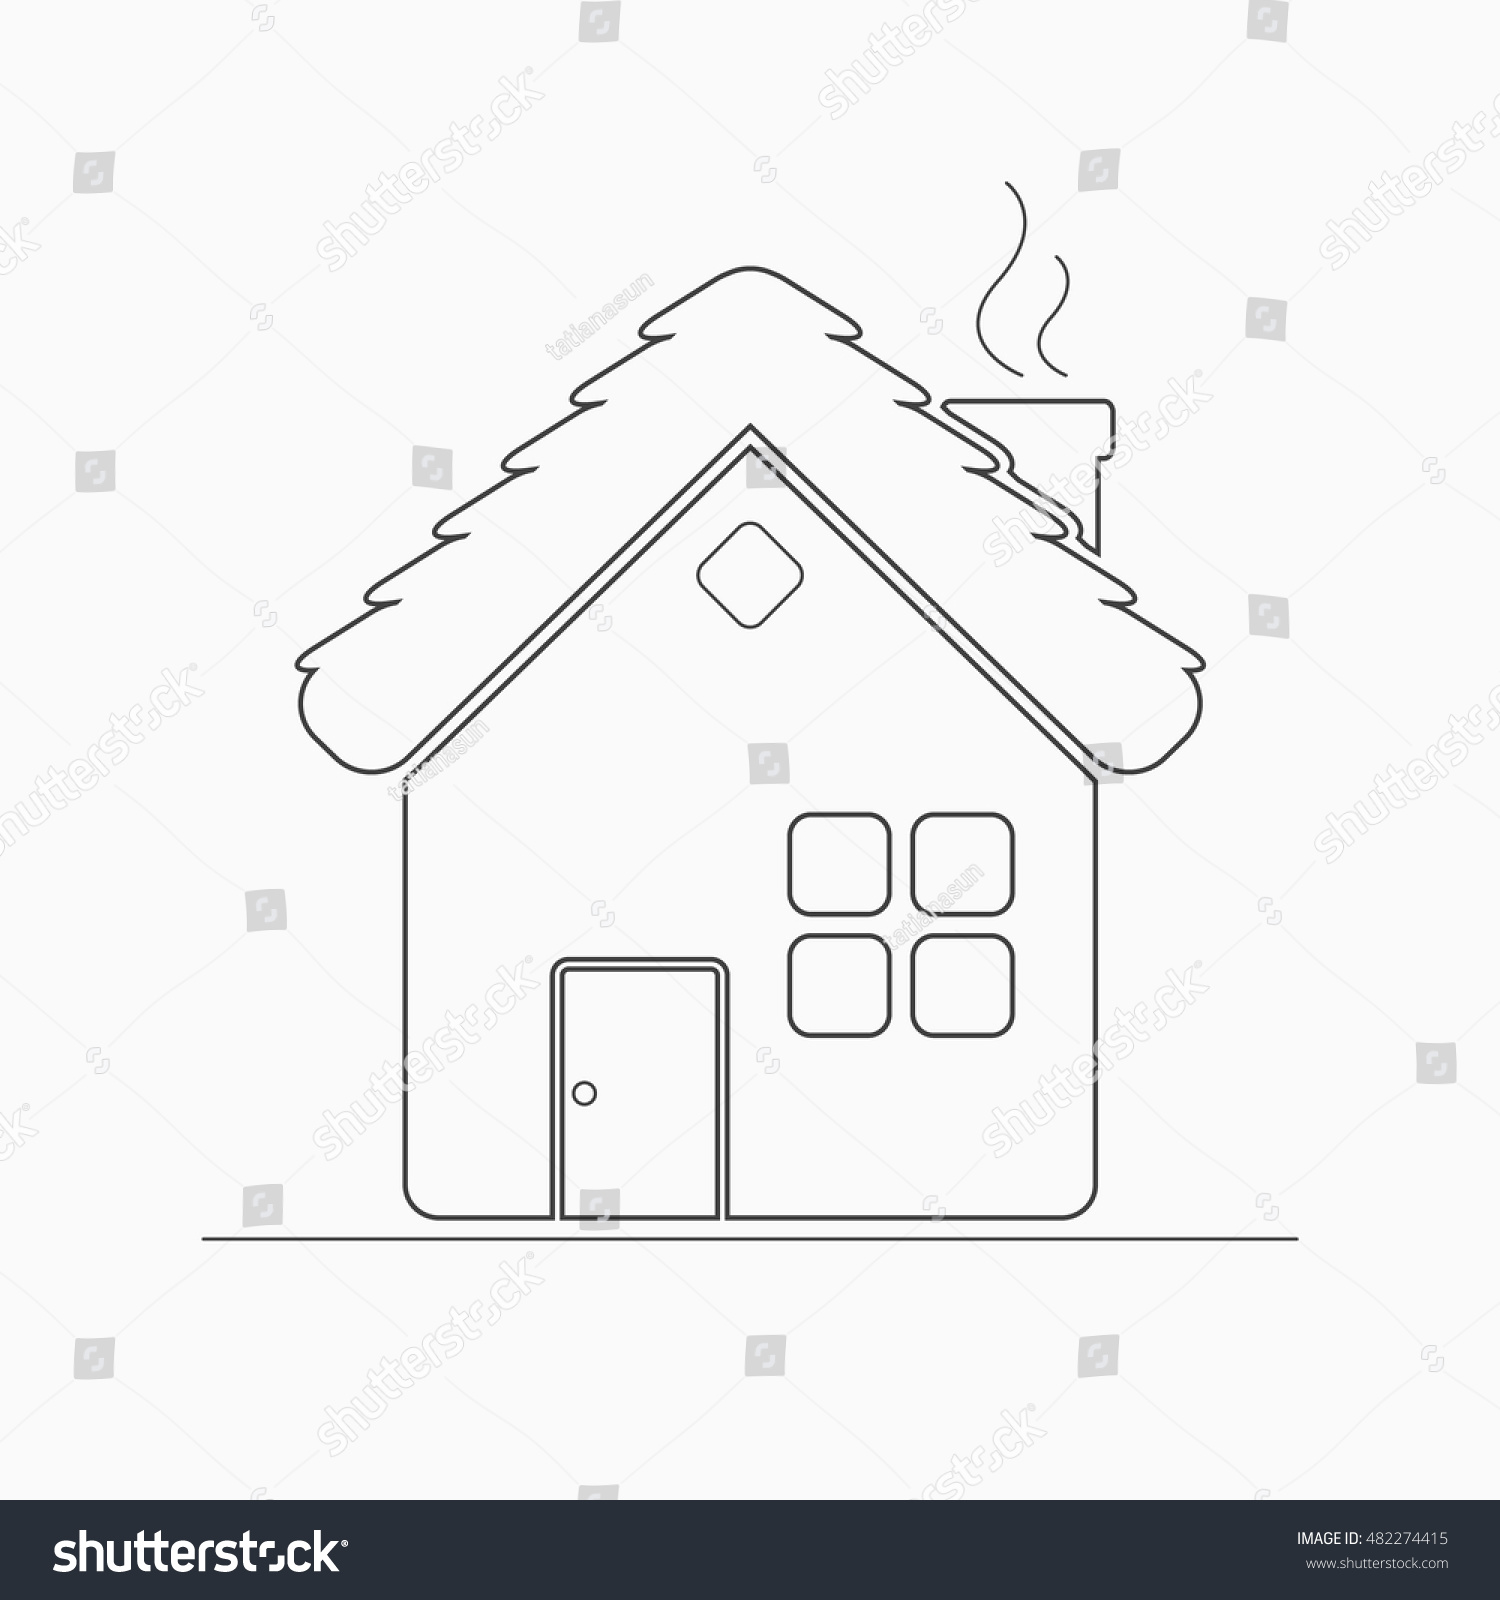 House outline picture - Village House Outline Icon Rural Or Country Home Sign Hildren S Coloring Page